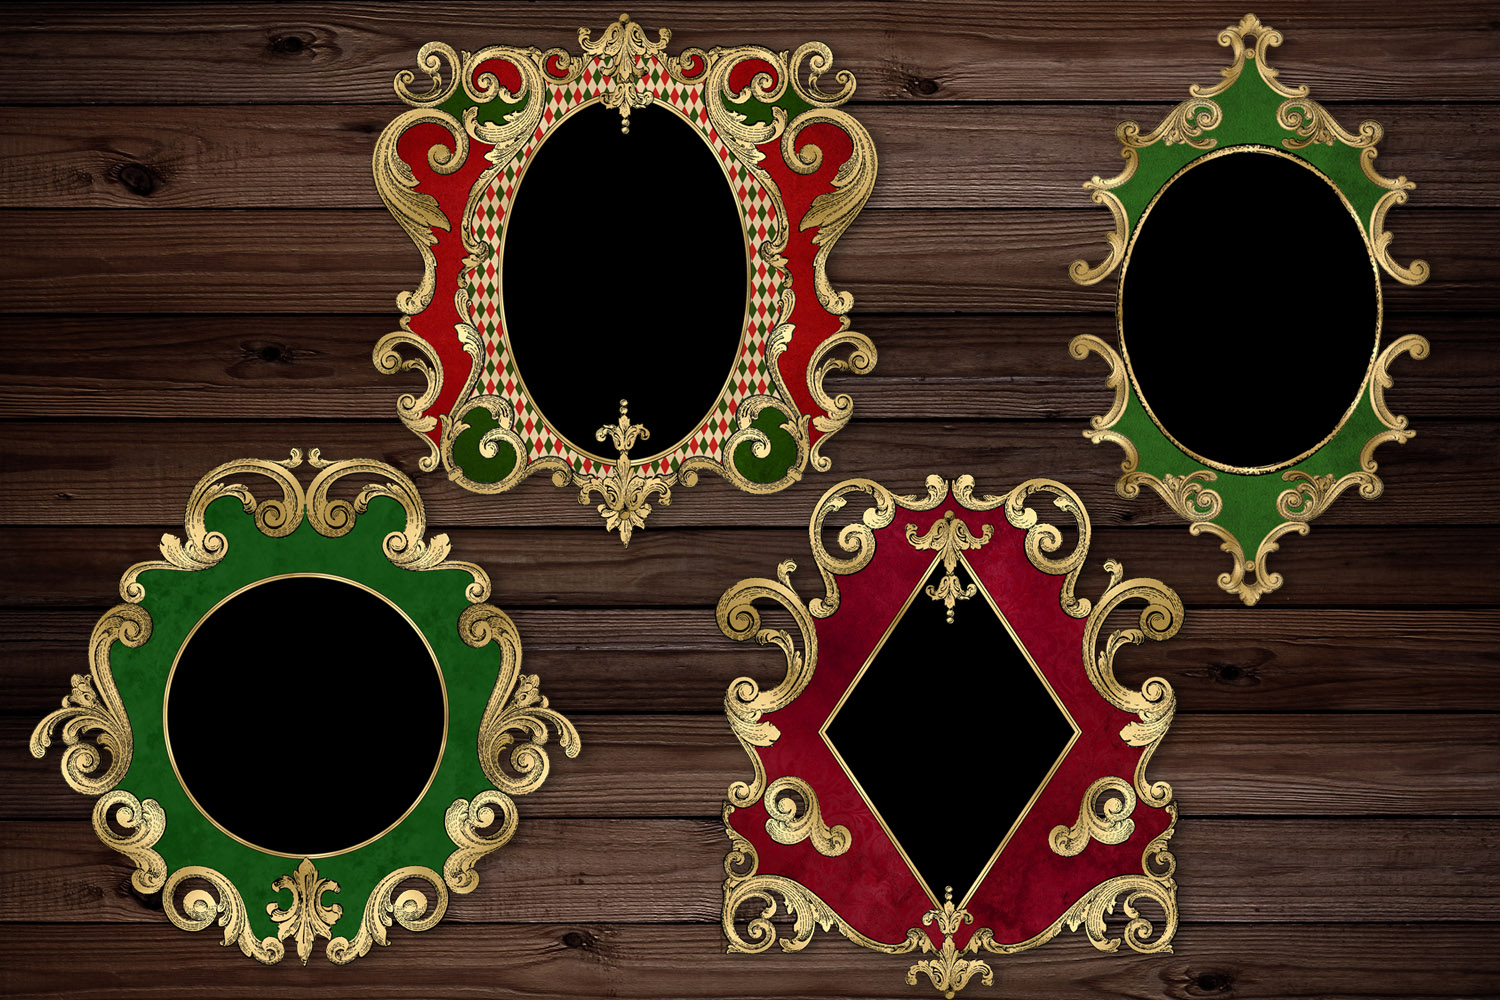 Ornate Christmas Frames Clipart example image 2